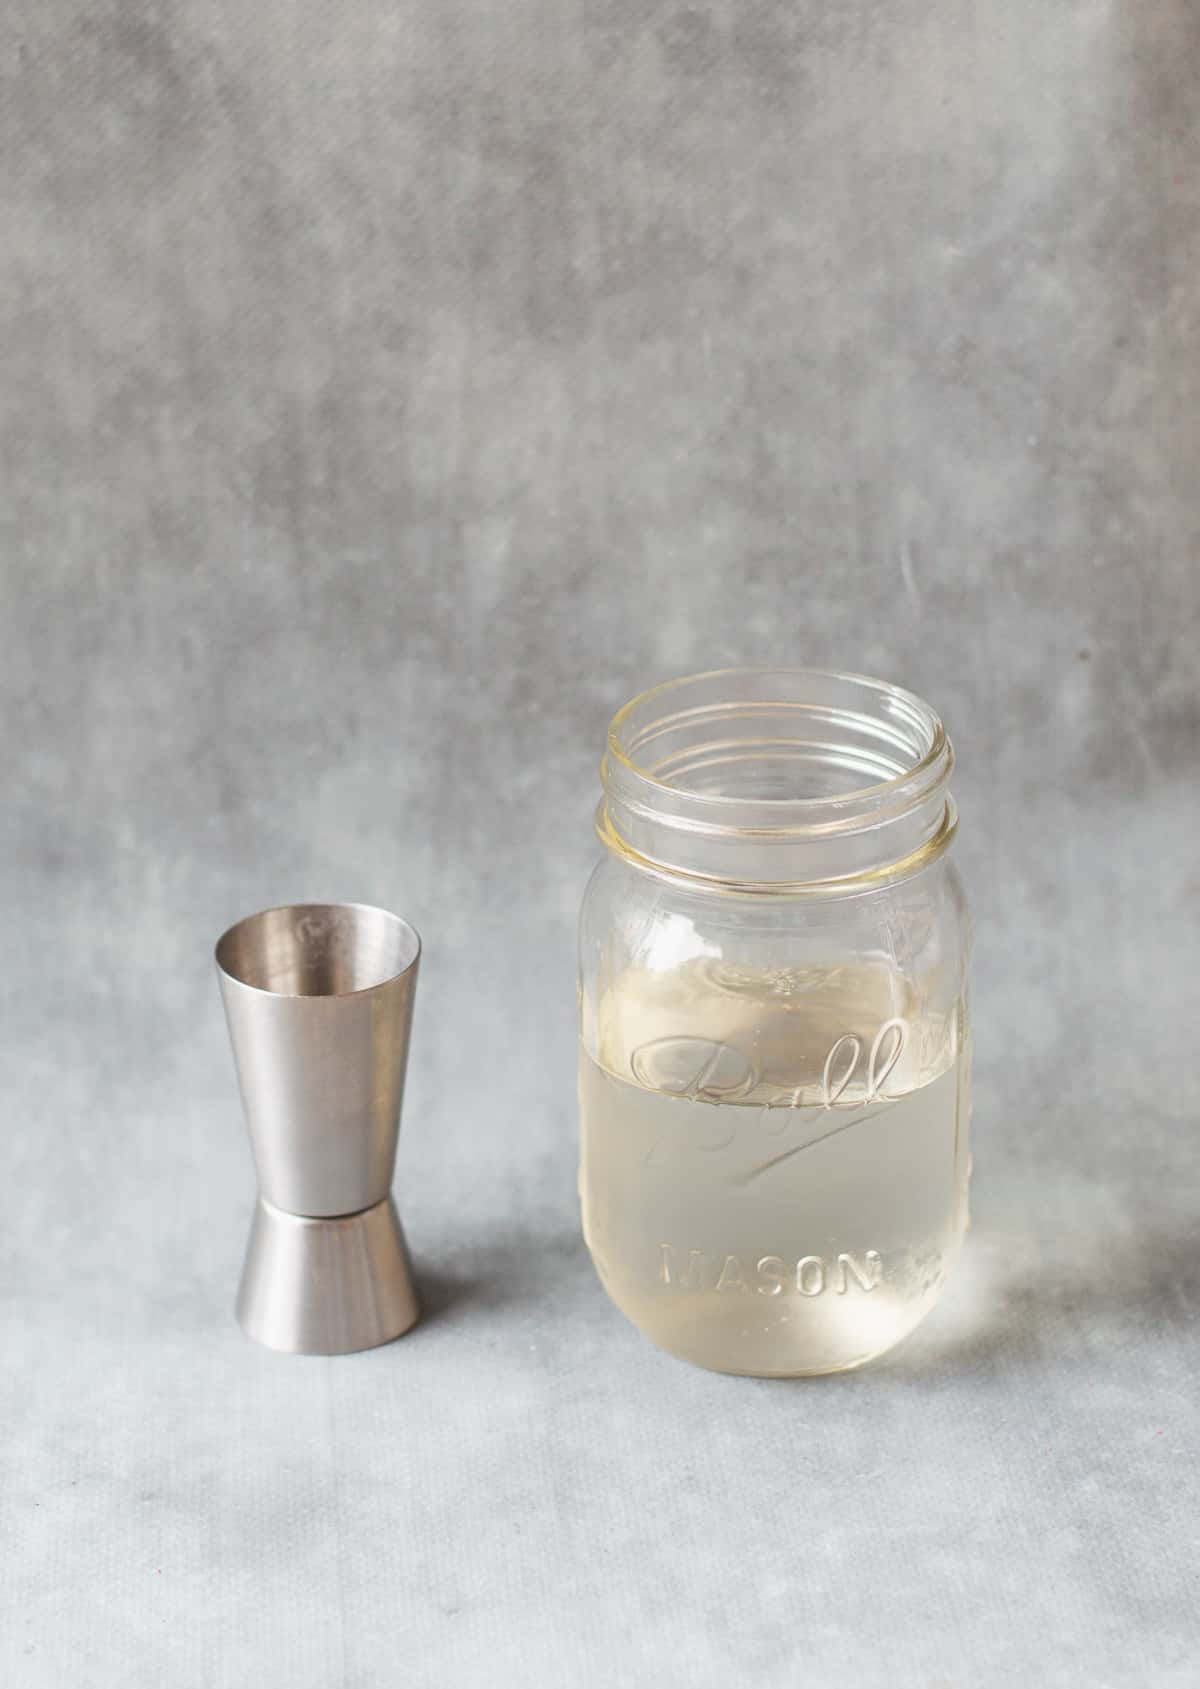 sugar syrup in glass jar with spirit measurer